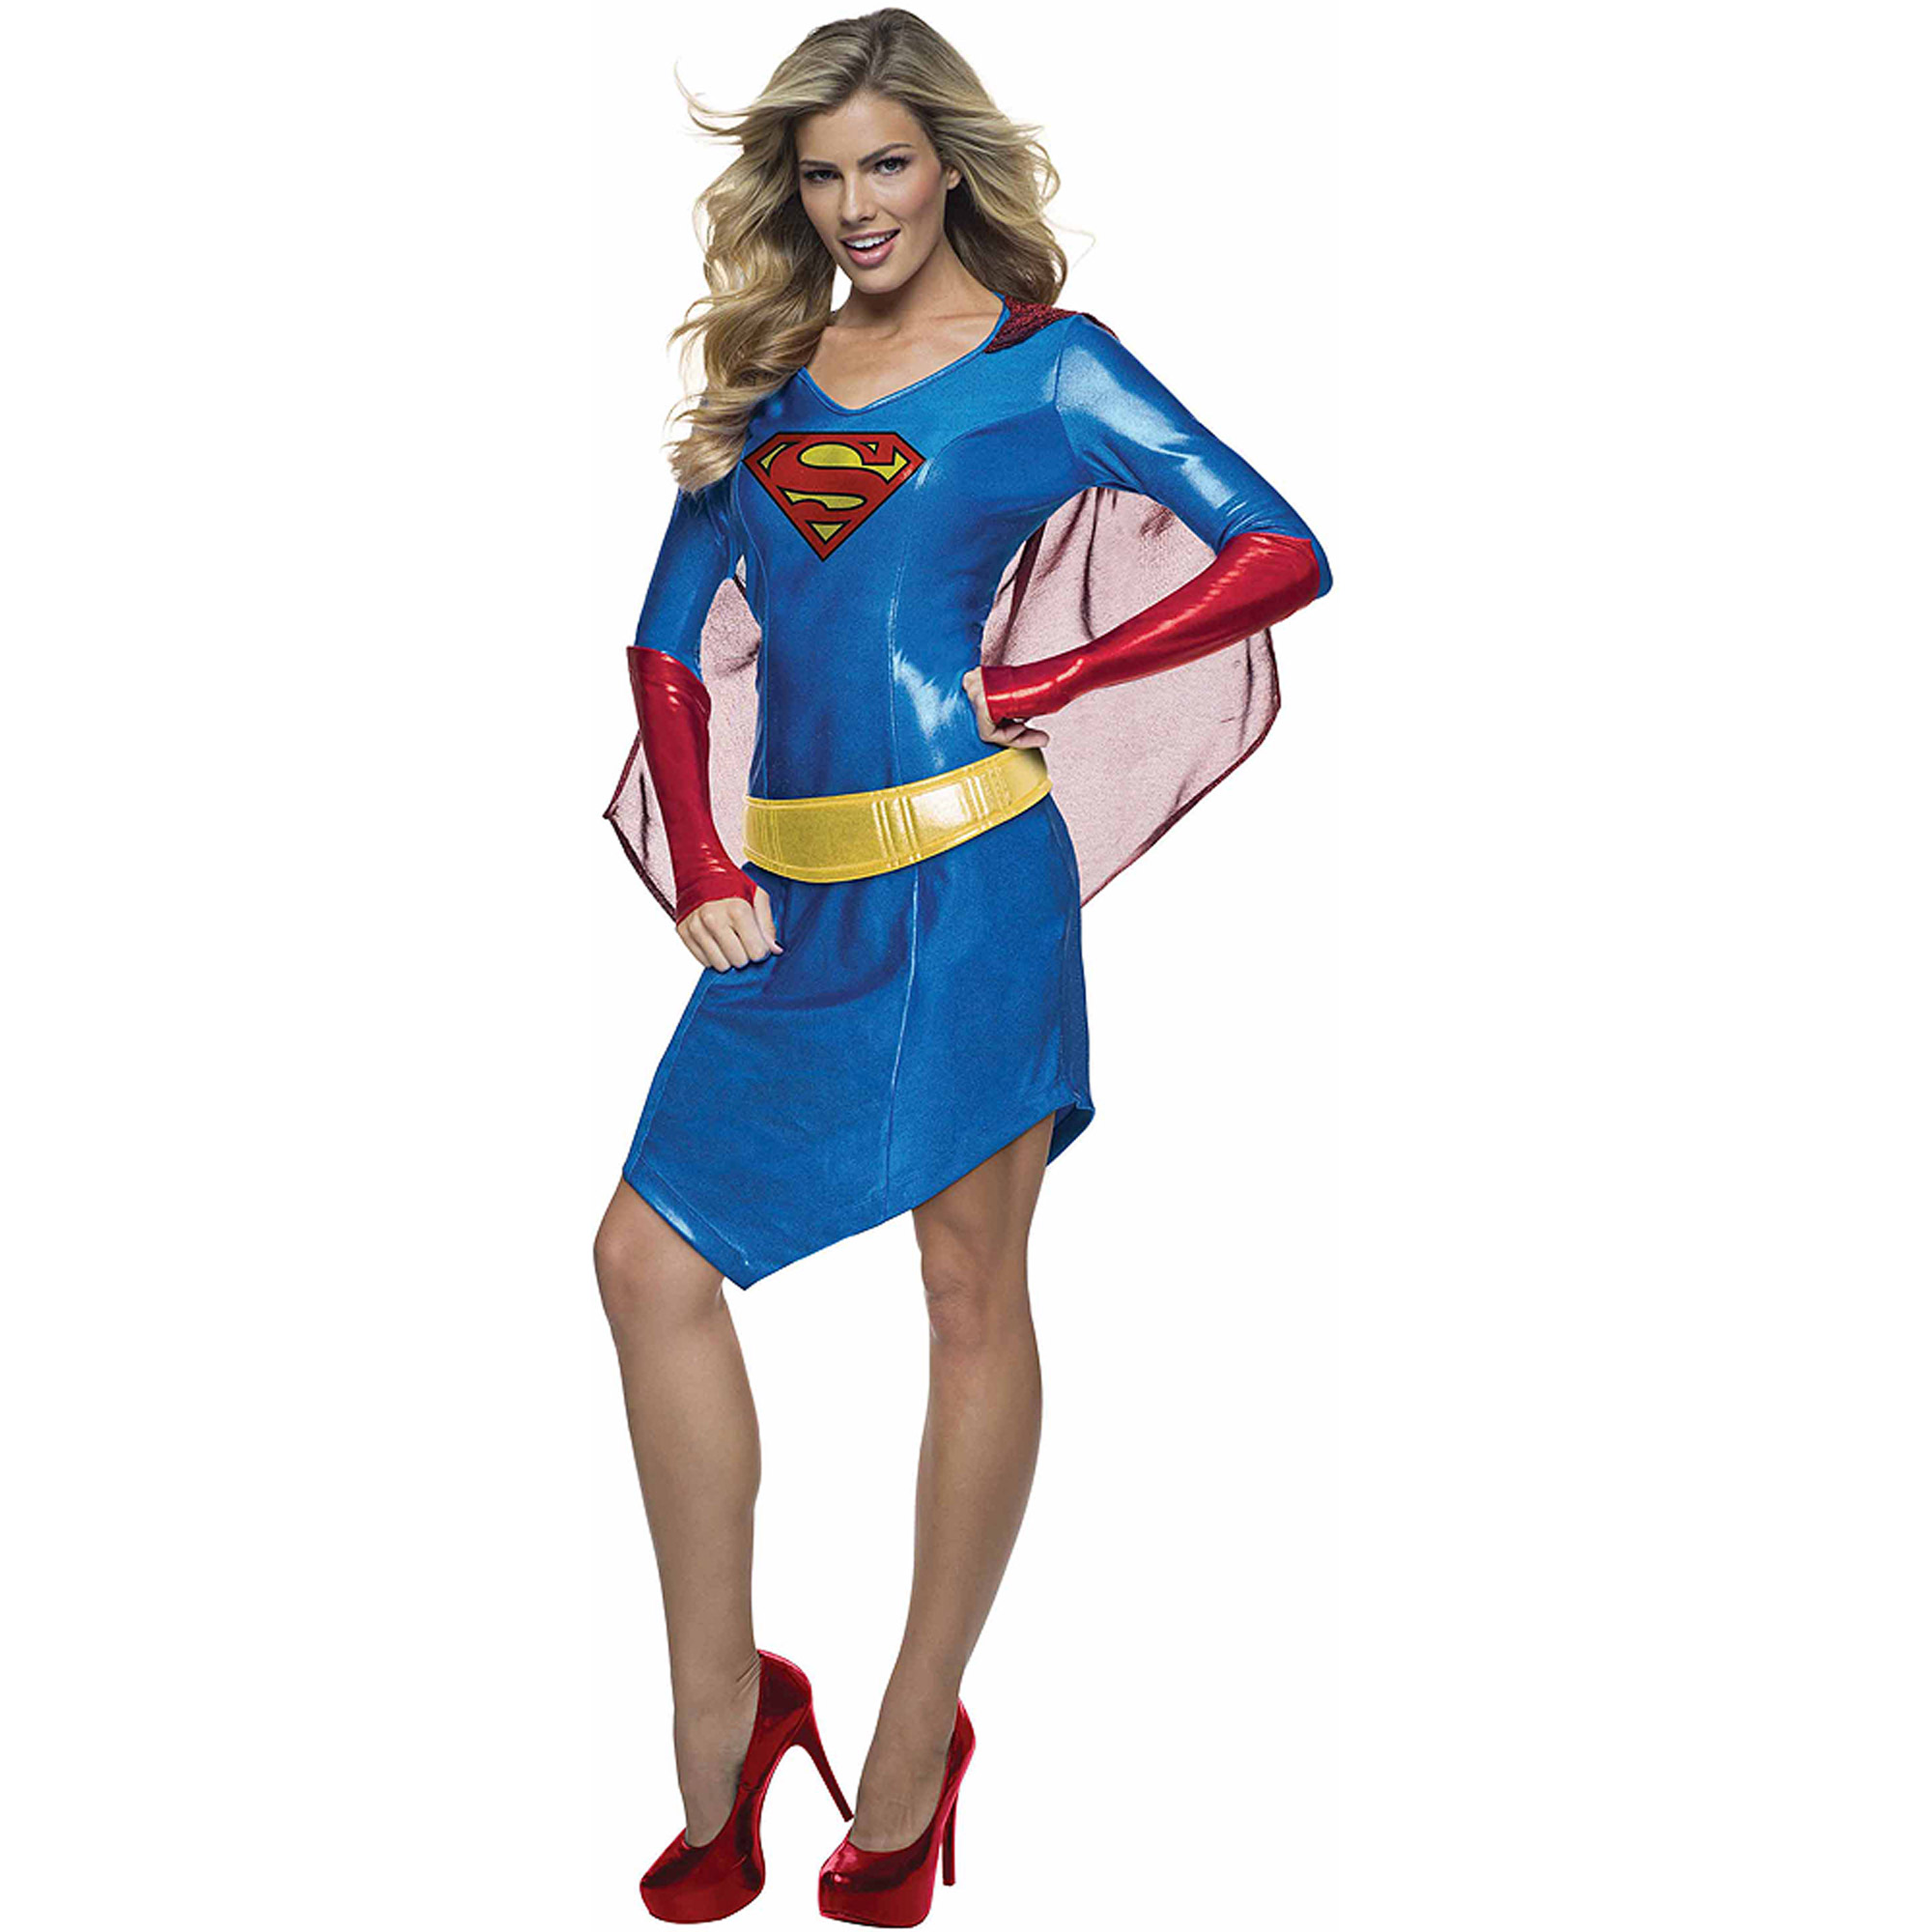 sc 1 st  Walmart & Supergirl Dress Womenu0027s Adult Halloween Costume - Walmart.com